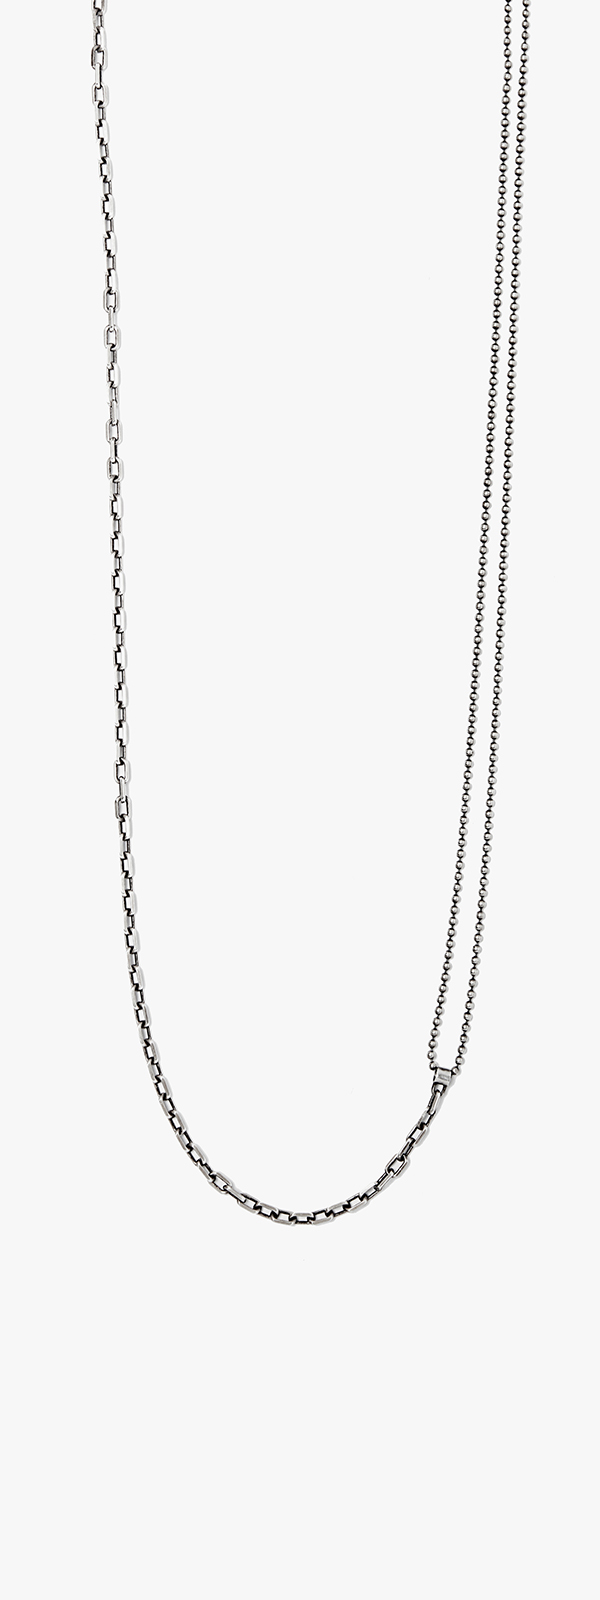 Image of Double-Wrap Ball to Anchor Chain Necklace 084